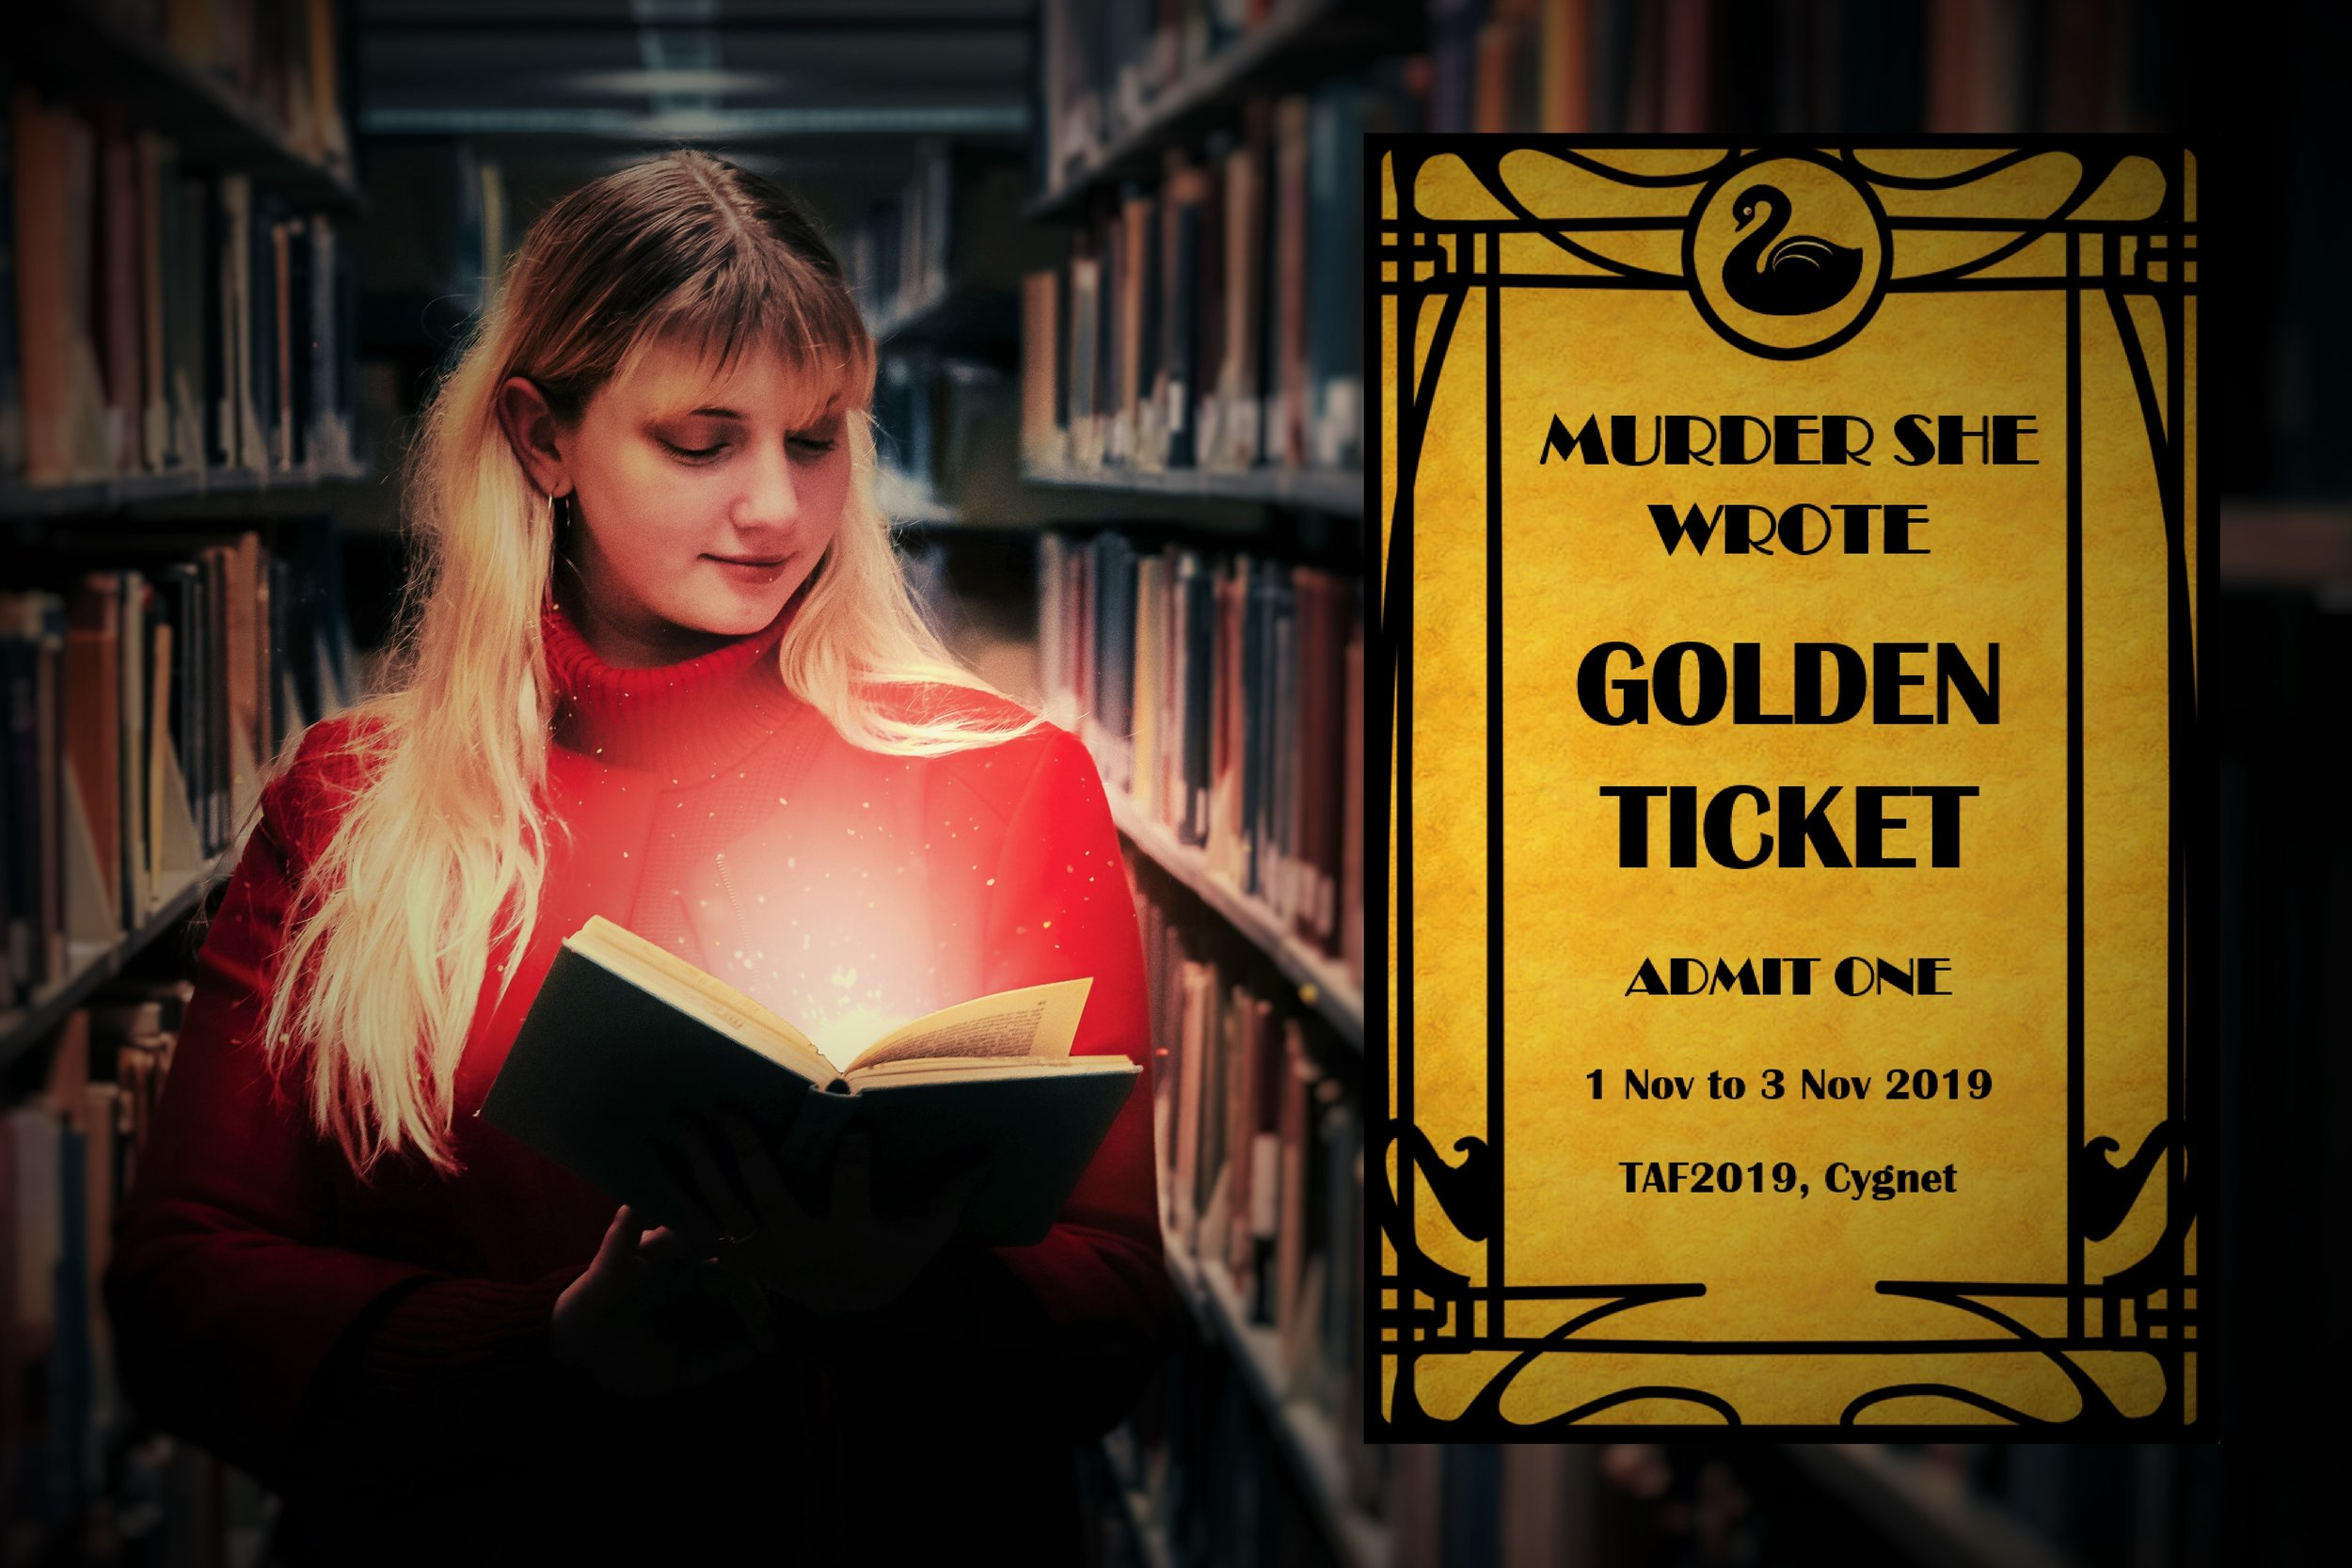 The first 80  Golden Tickets  sold include a seat at the  Curse of the Sphinx Murder Mystery Party .